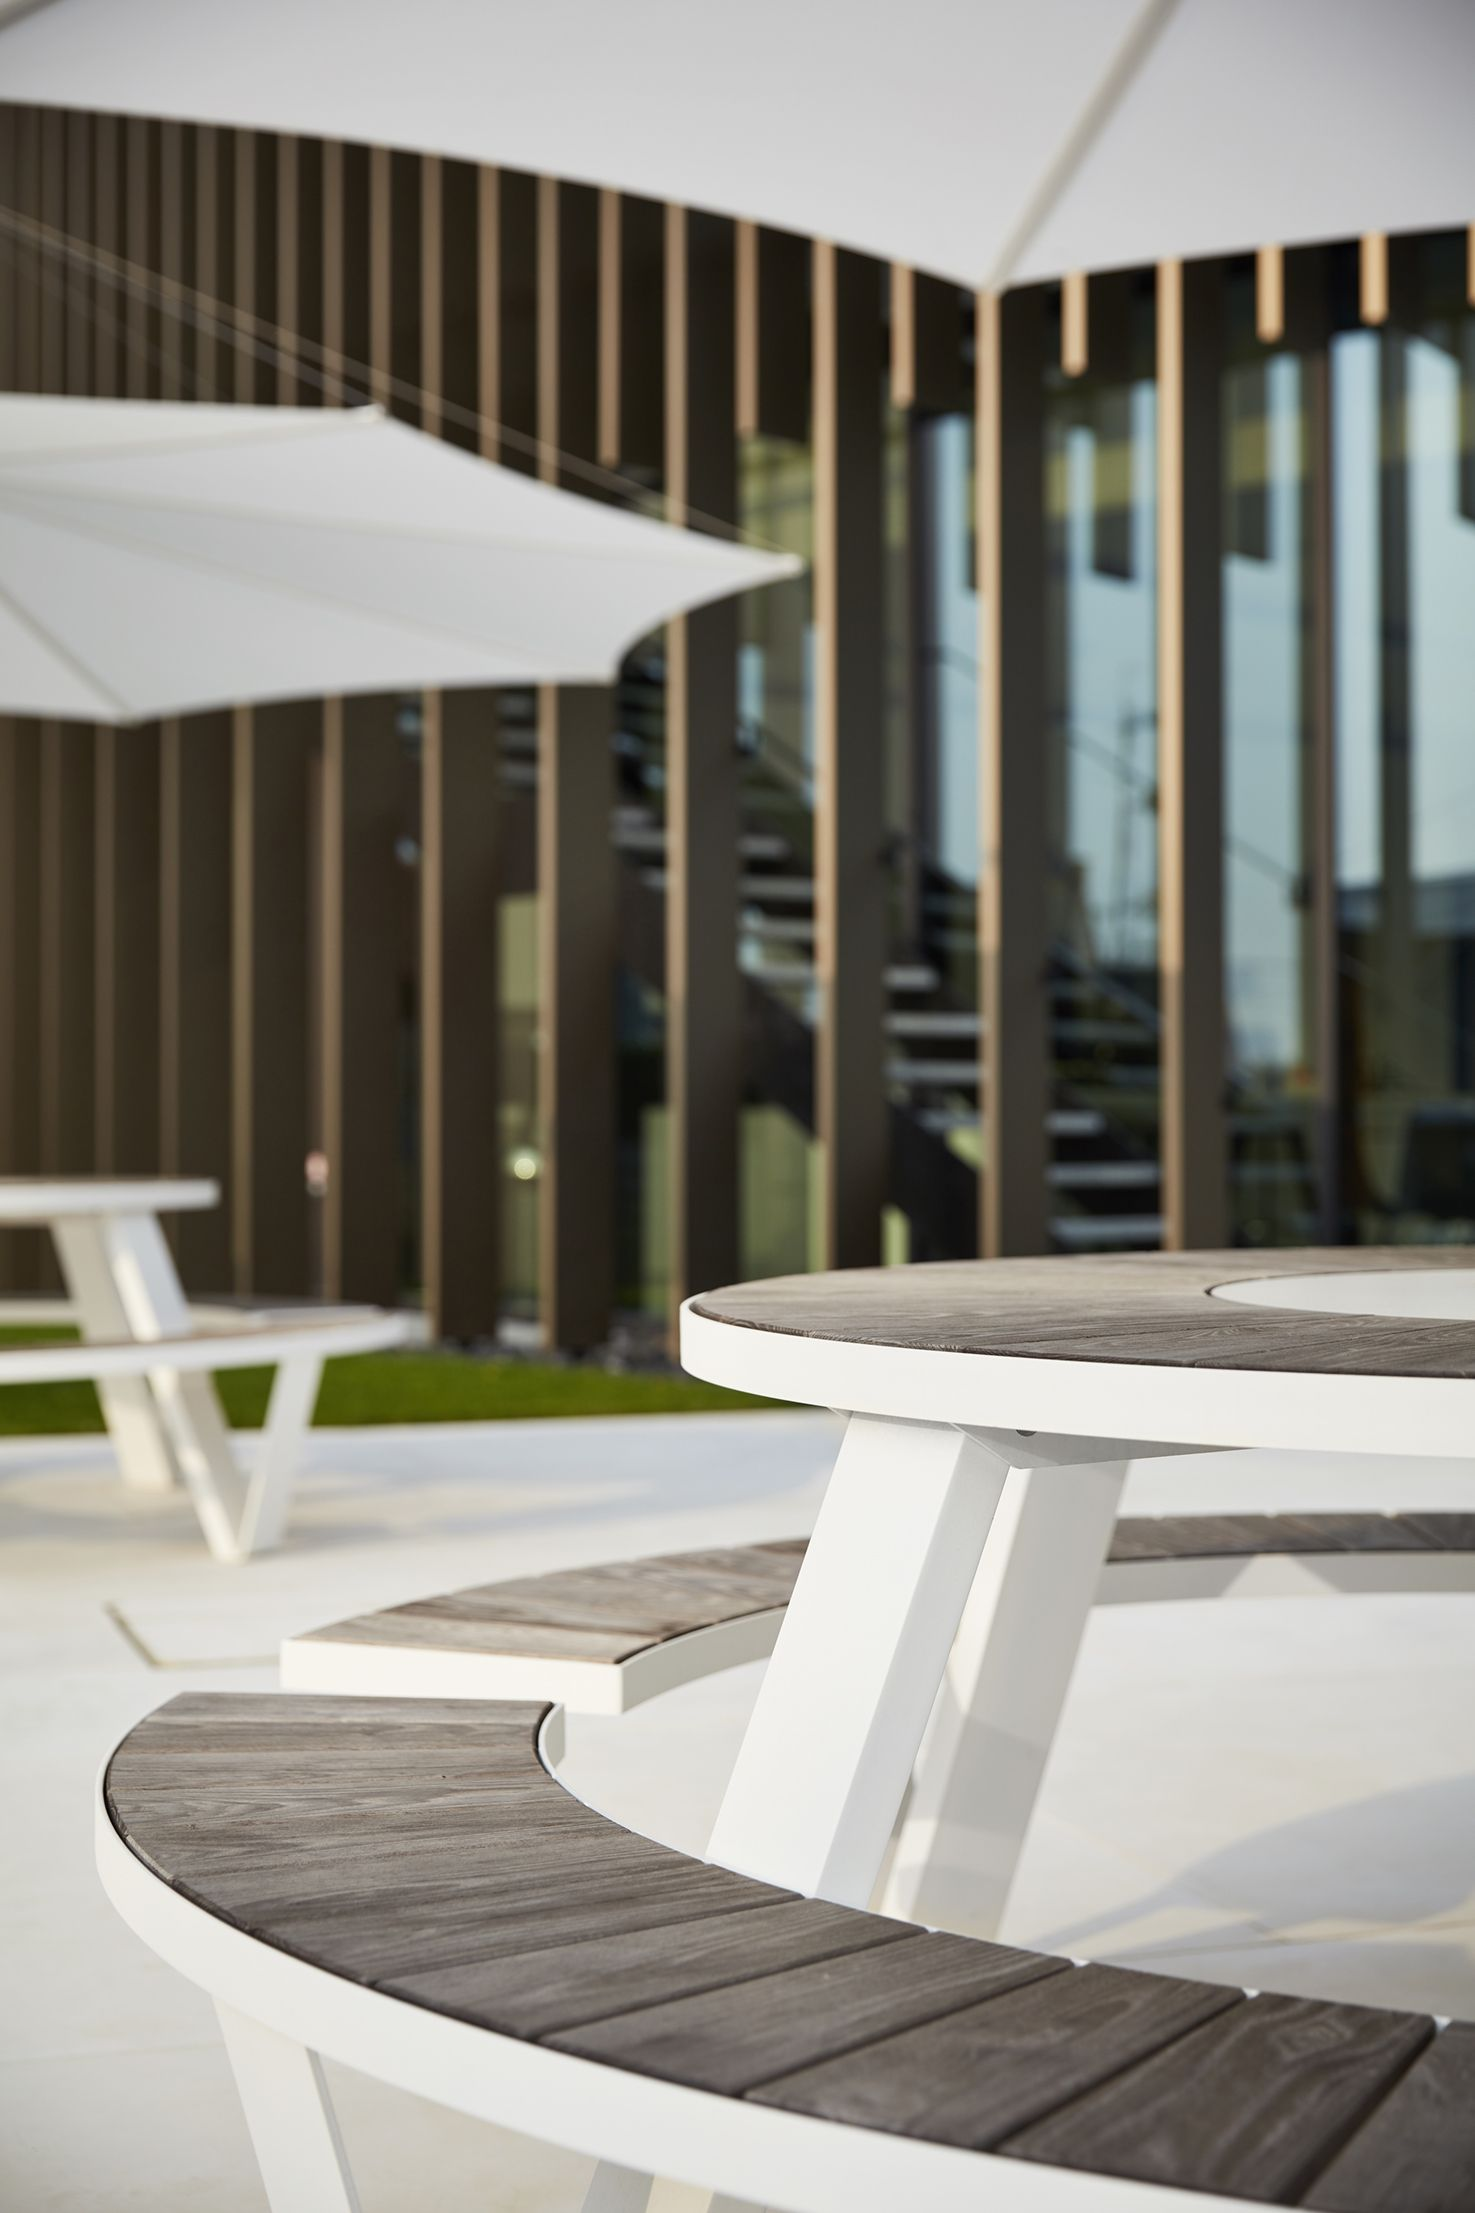 White Round Outdoor Cafe Table ORDER NOW AT SPACEIST City - White round picnic table